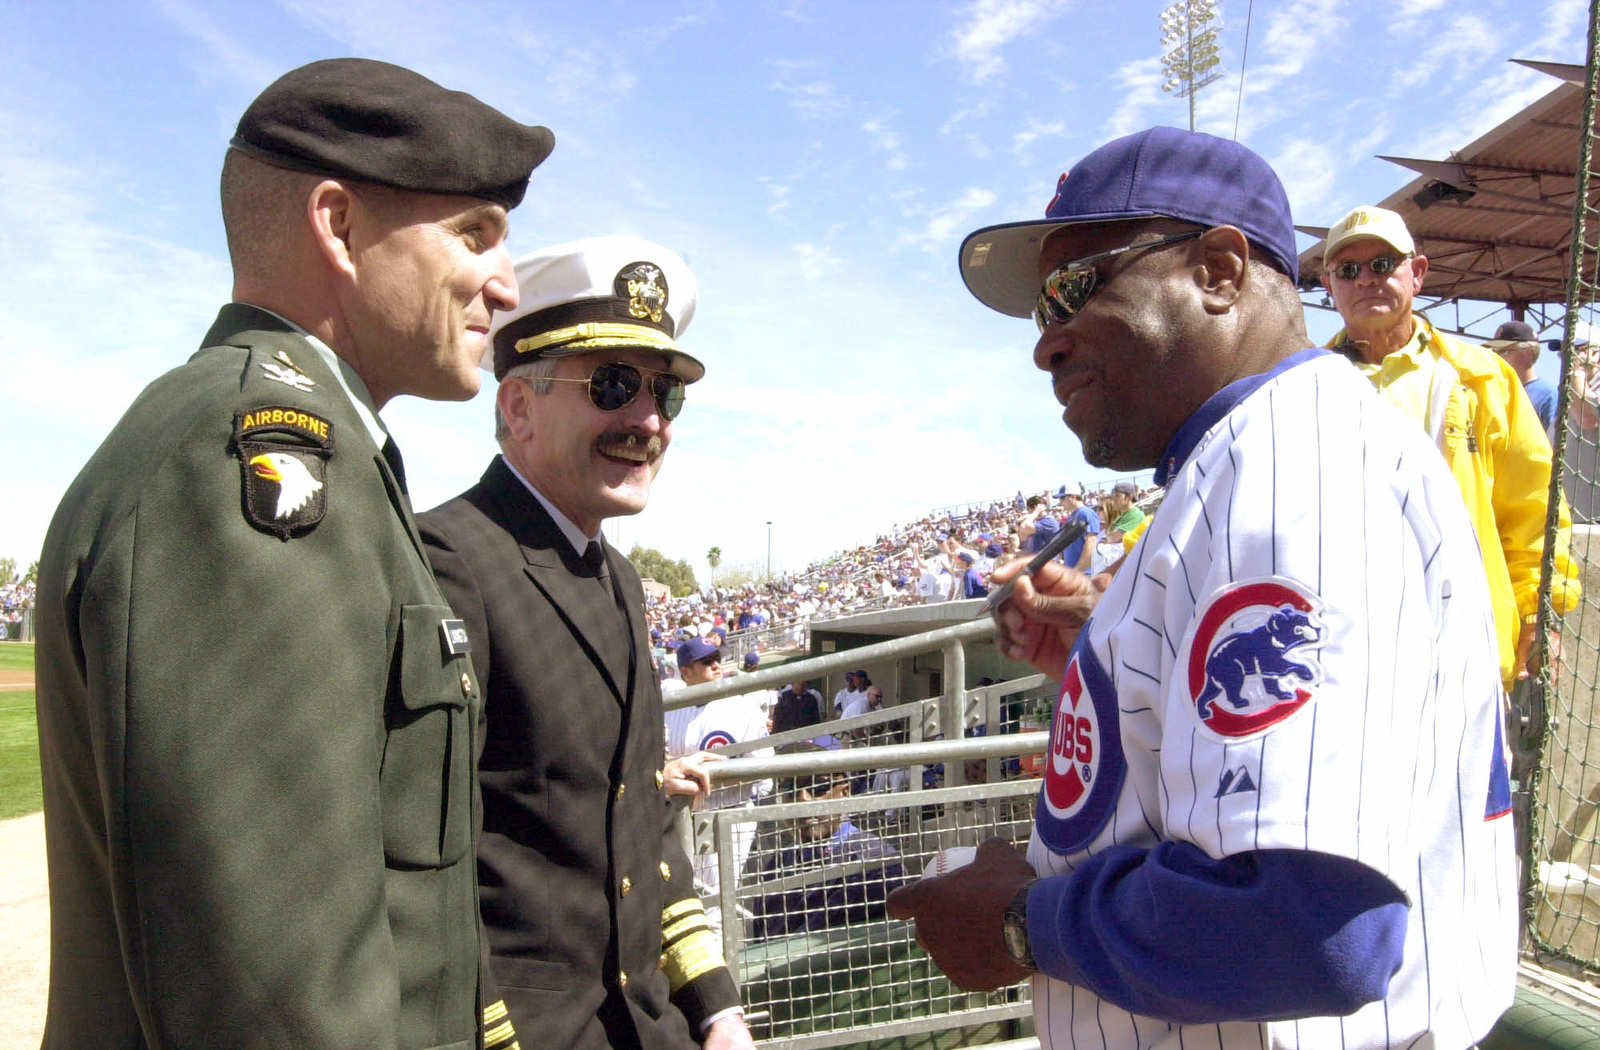 US Navy (USN) Vice Admiral (VADM) Evan M. Chanik, Director, Force Structure, Resources and Assessment and his aid, US Army (USA) Colonel (COL) Michael Linnington, get a baseball signed by Chicago Cubs Manager Dusty Baker, at a Phoenix, Arizona (AZ), training camp